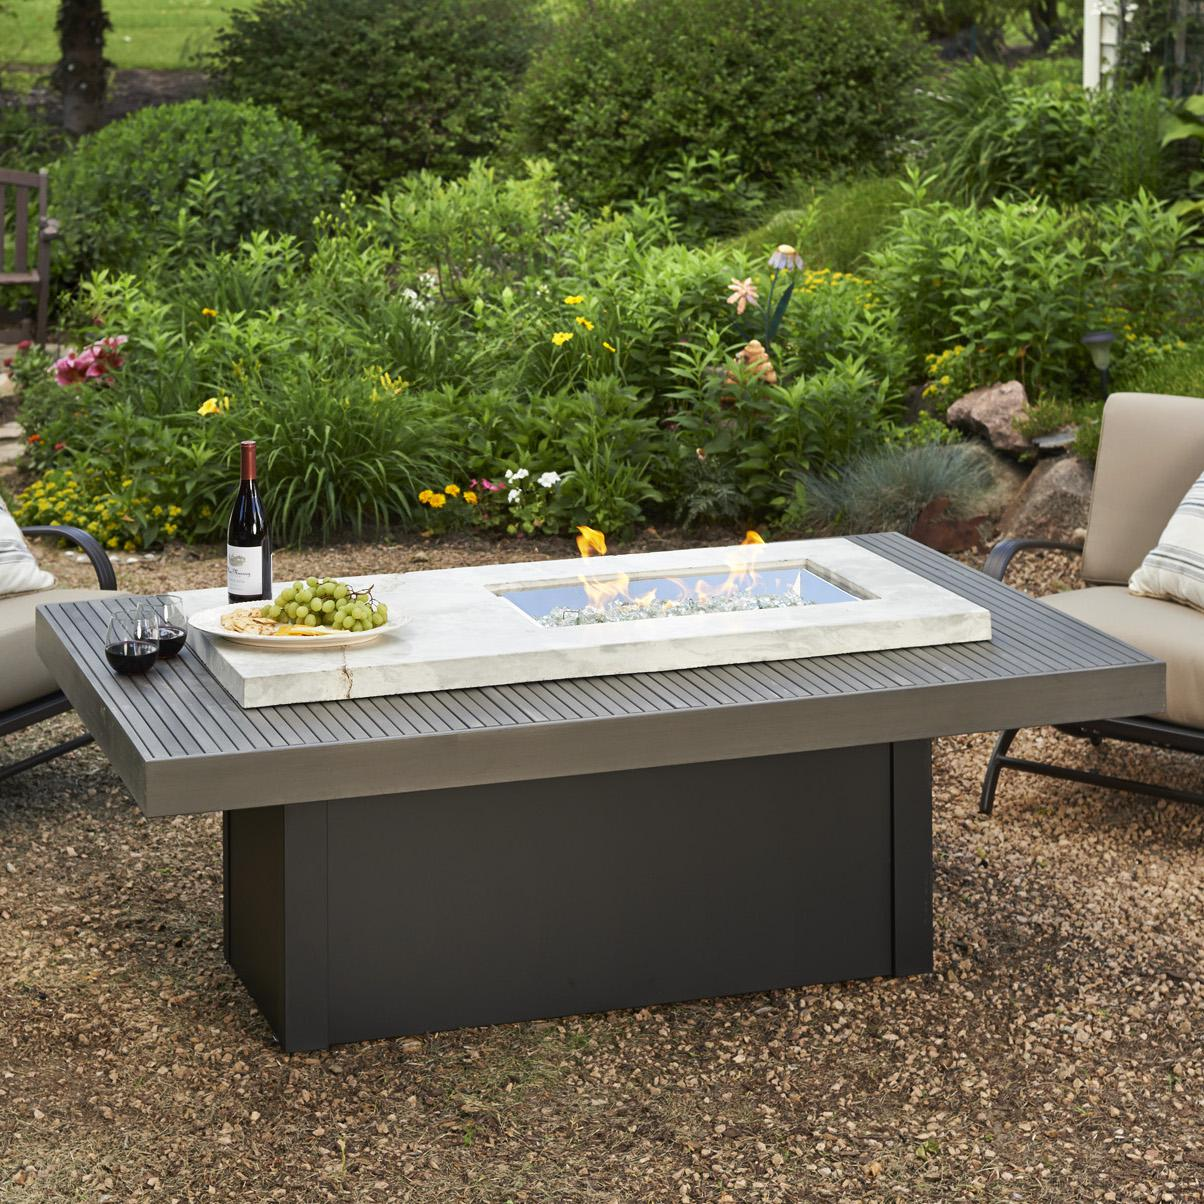 Outdoor GreatRoom Boardwalk 72-Inch Linear Propane Gas Fi. - Gas Fire Pit Crystals Fireplaces Compare Prices At Nextag